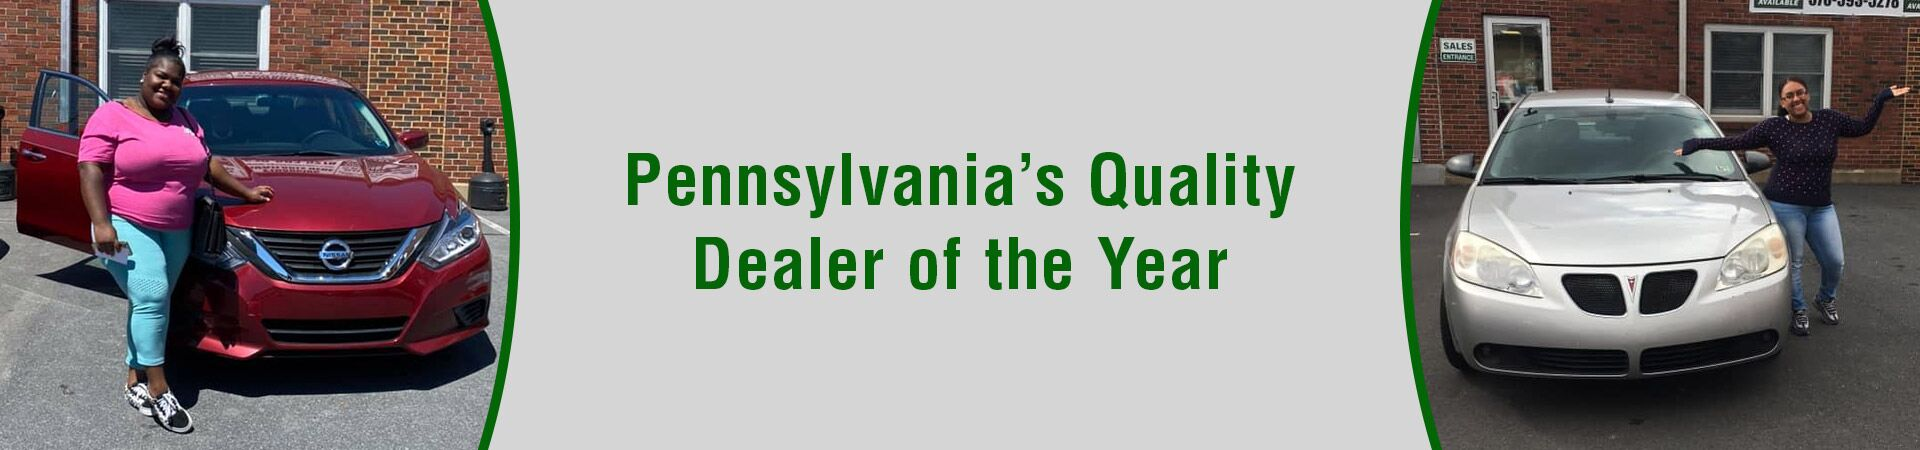 PA Quality Dealer of the Year